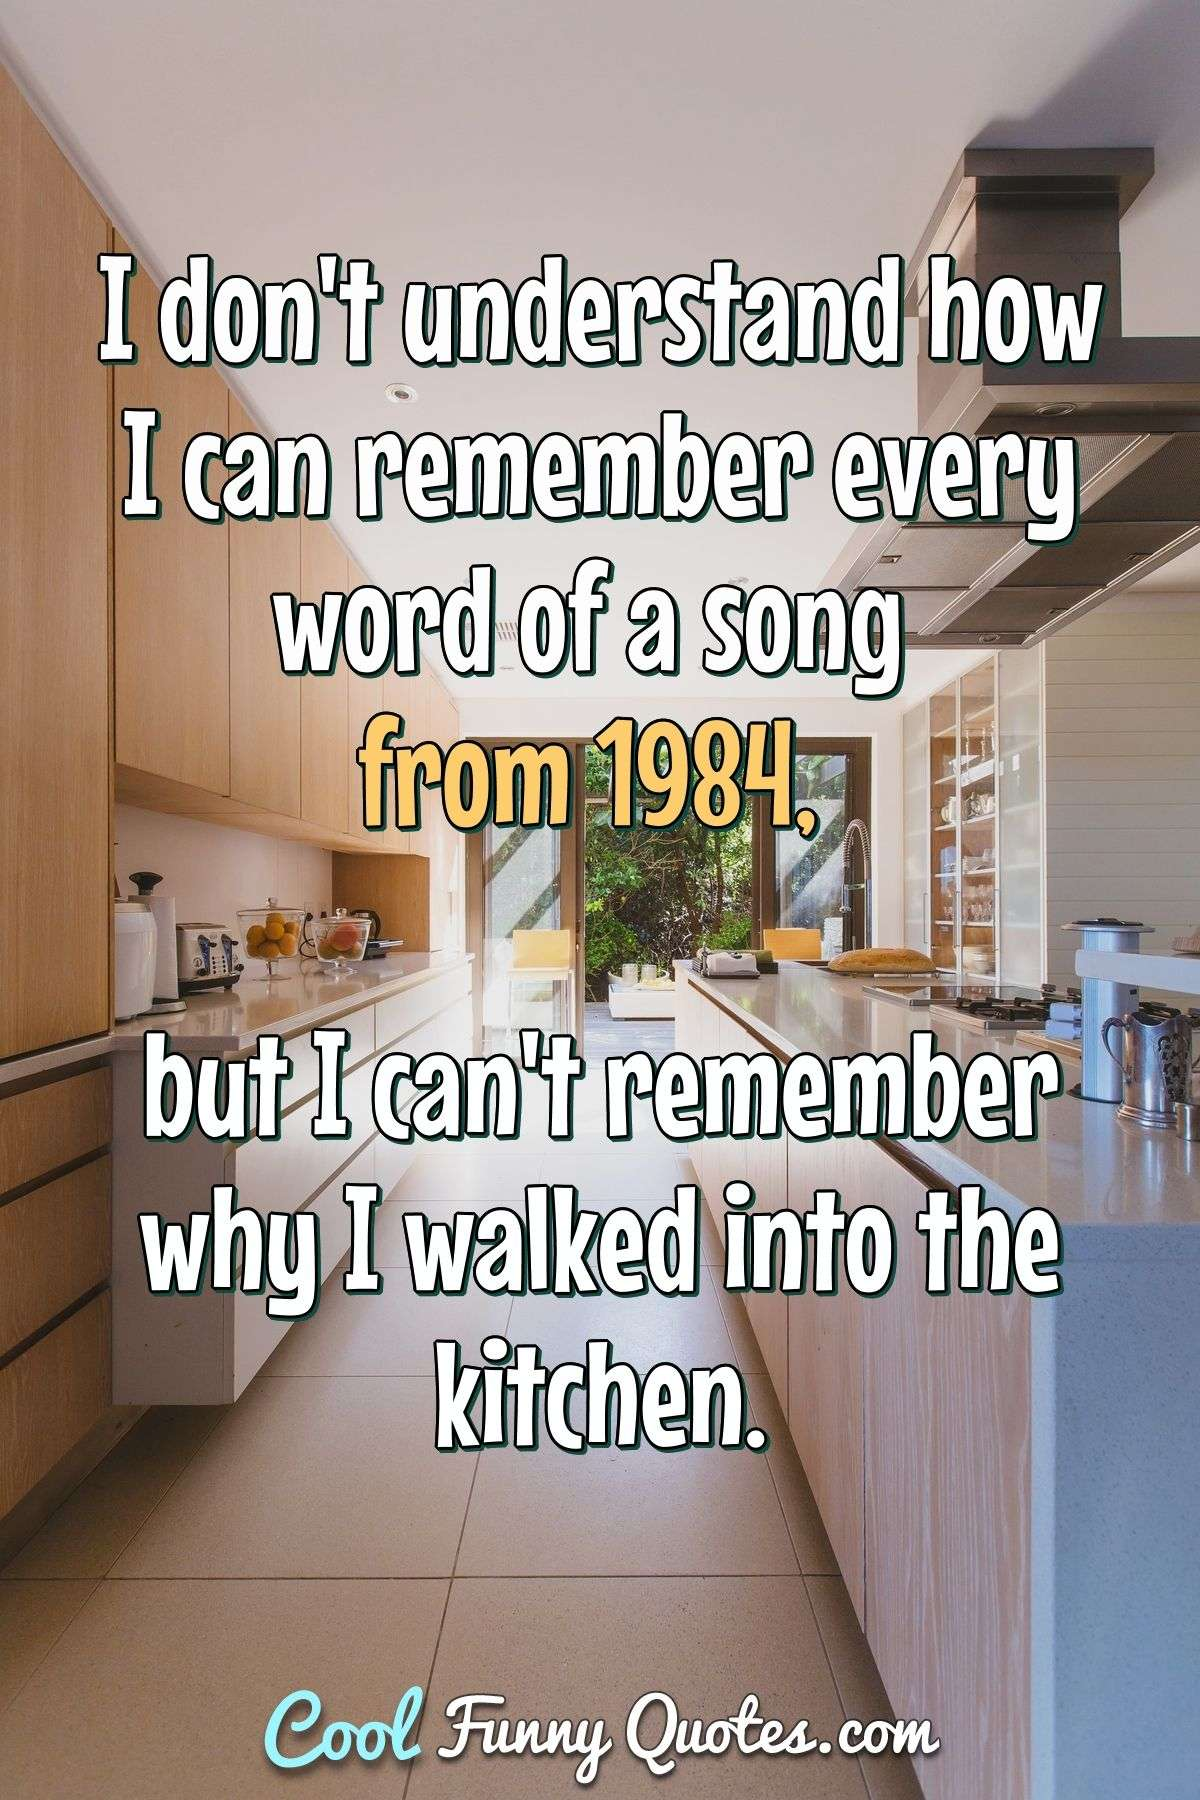 I don't understand how I can remember every word of a song from 1984, but I can't remember why I walked into the kitchen. - Anonymous